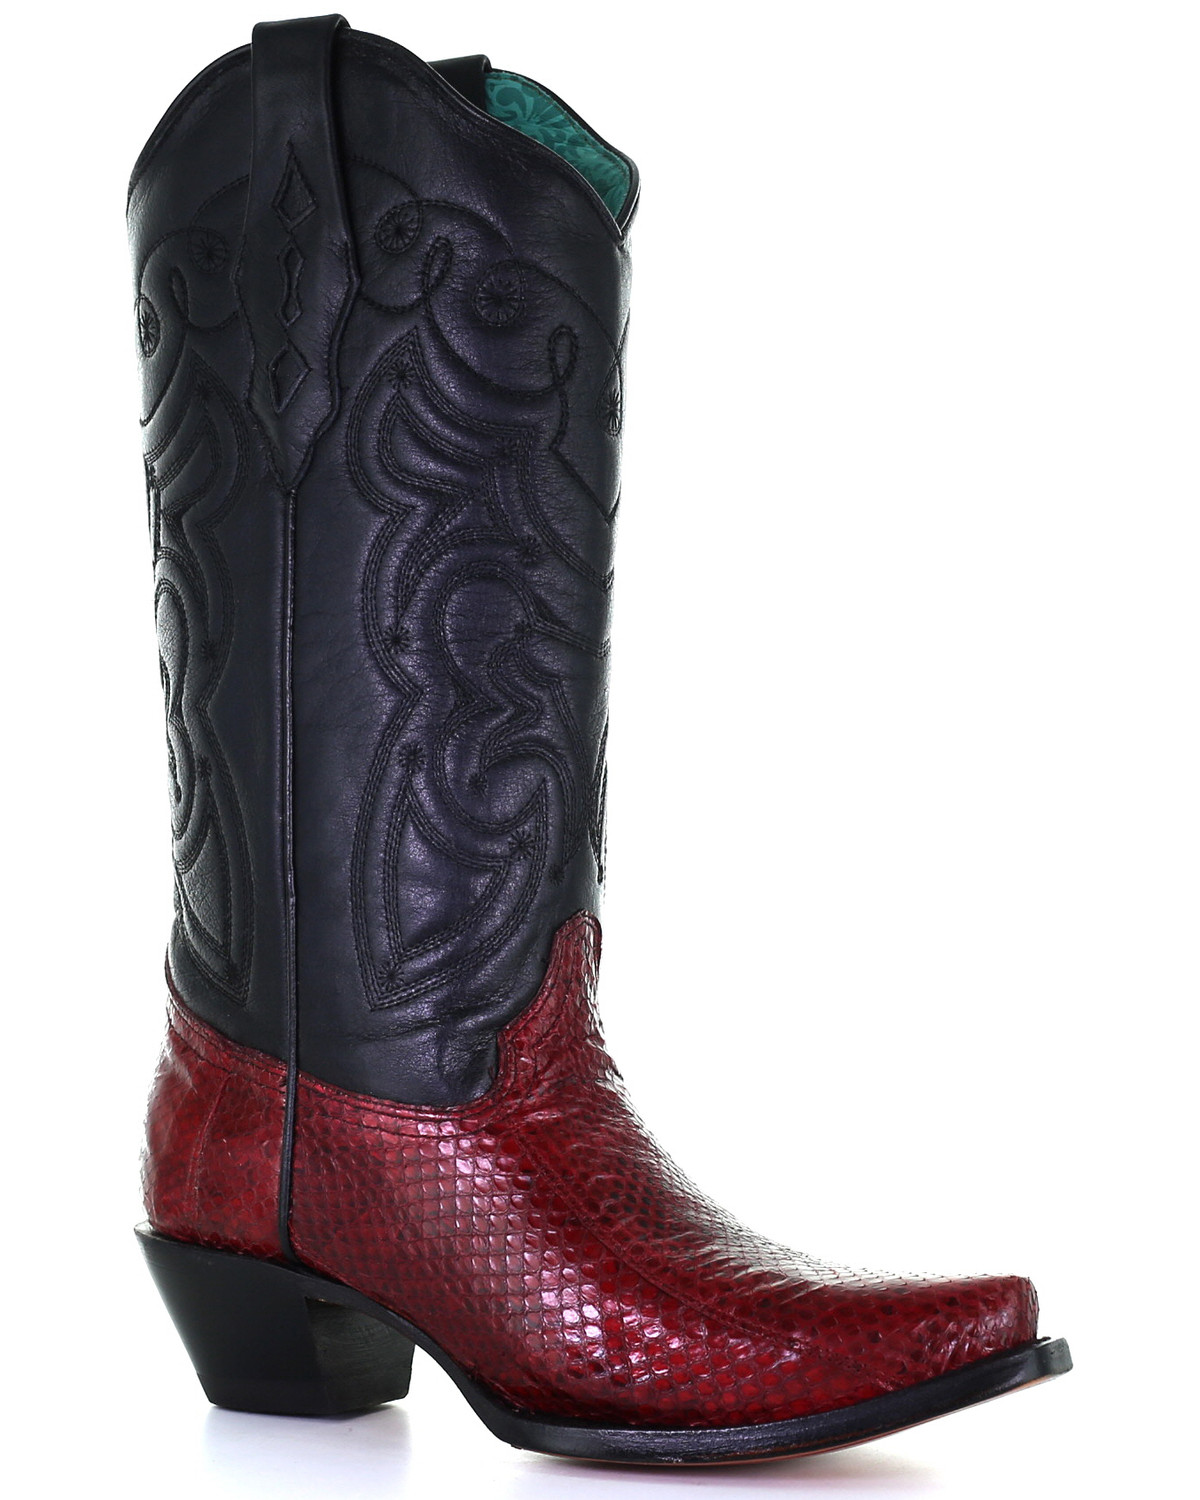 Details about  /Europe Women/'s Cowboy Snakeskin Pattern Block Heel Pointed Toe Knee High Boots L